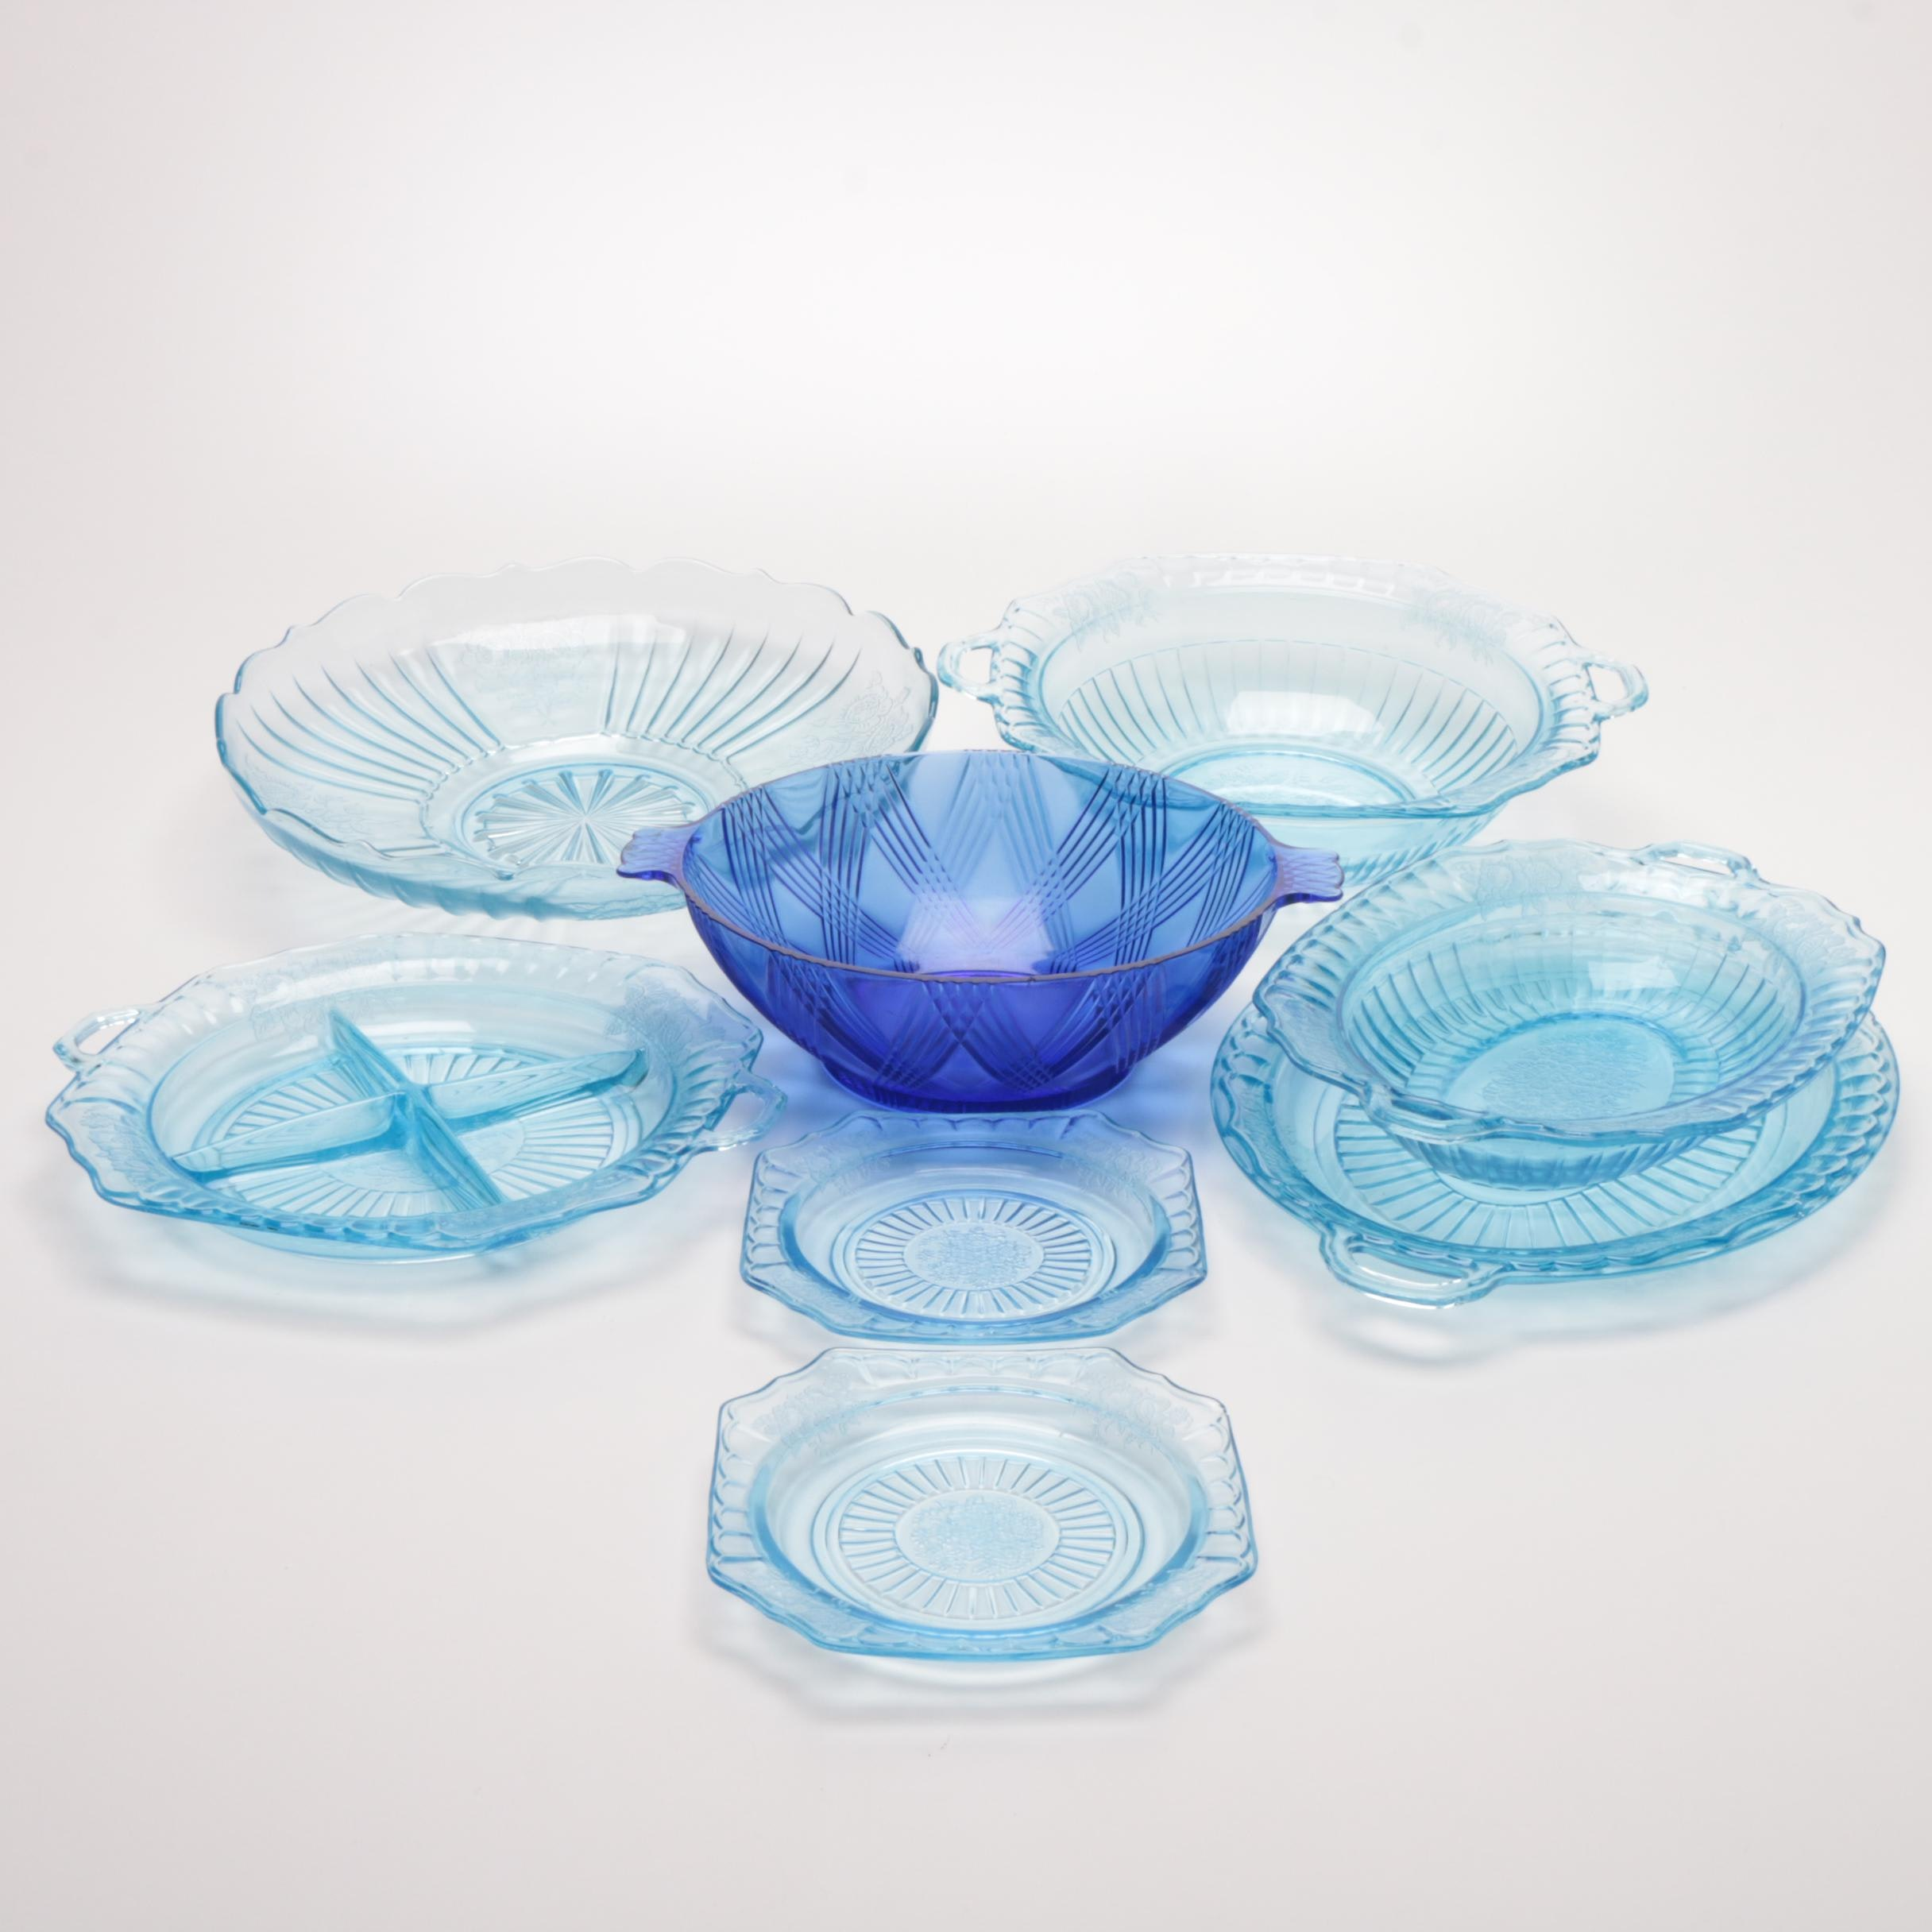 Vintage Blue Depression Glass Serveware